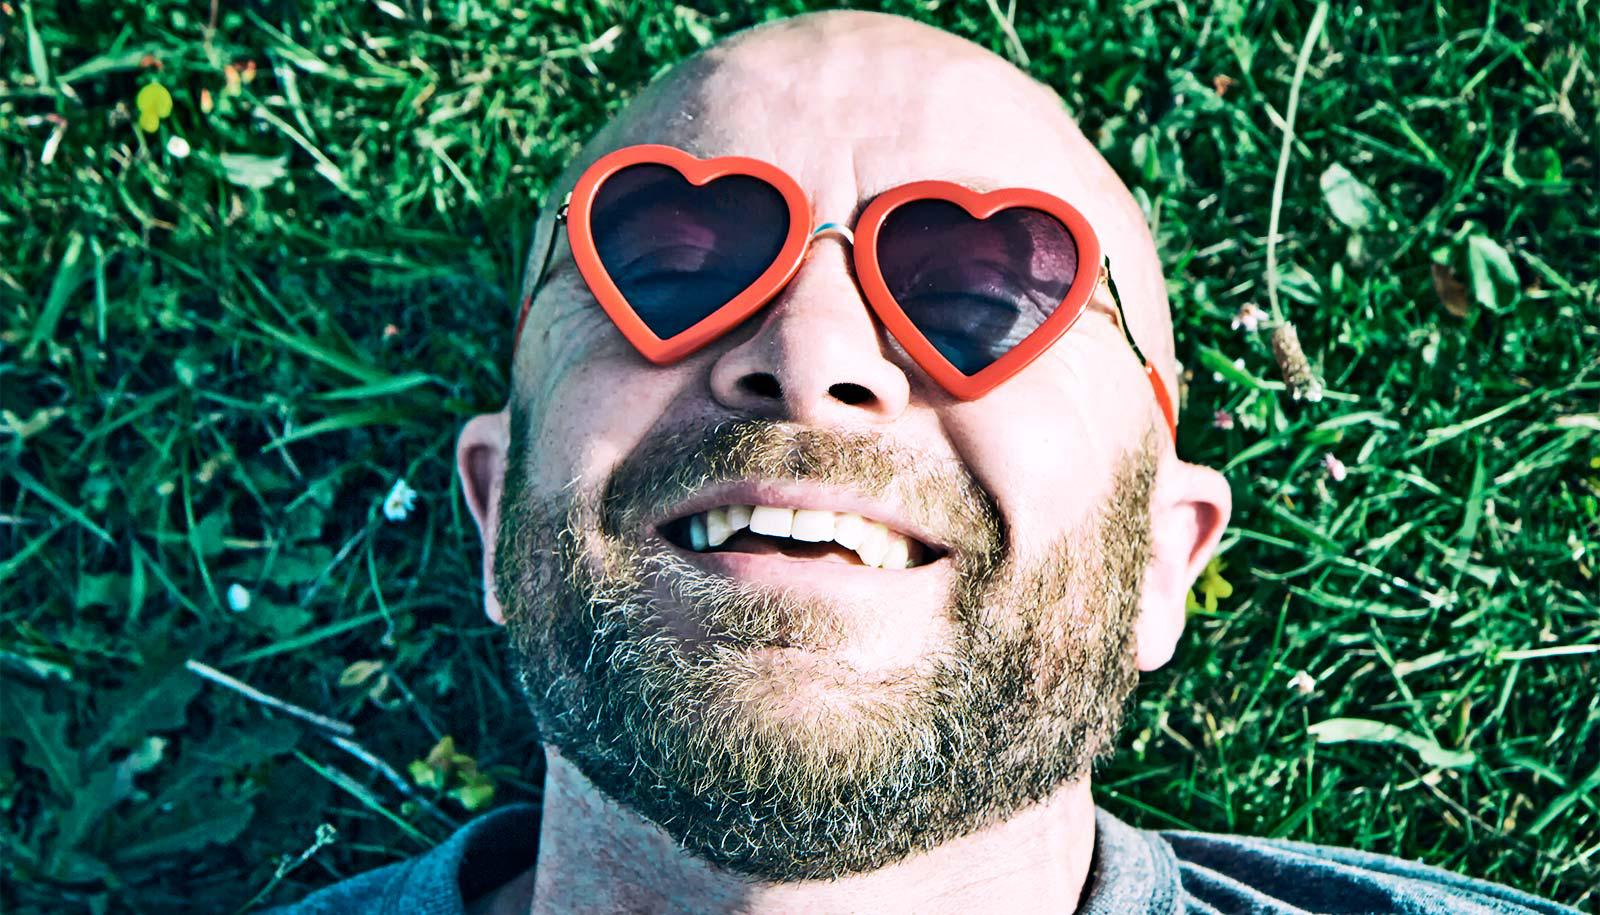 A bald man wearing heart-shaped glasses smiles with contentment as he lies on grass